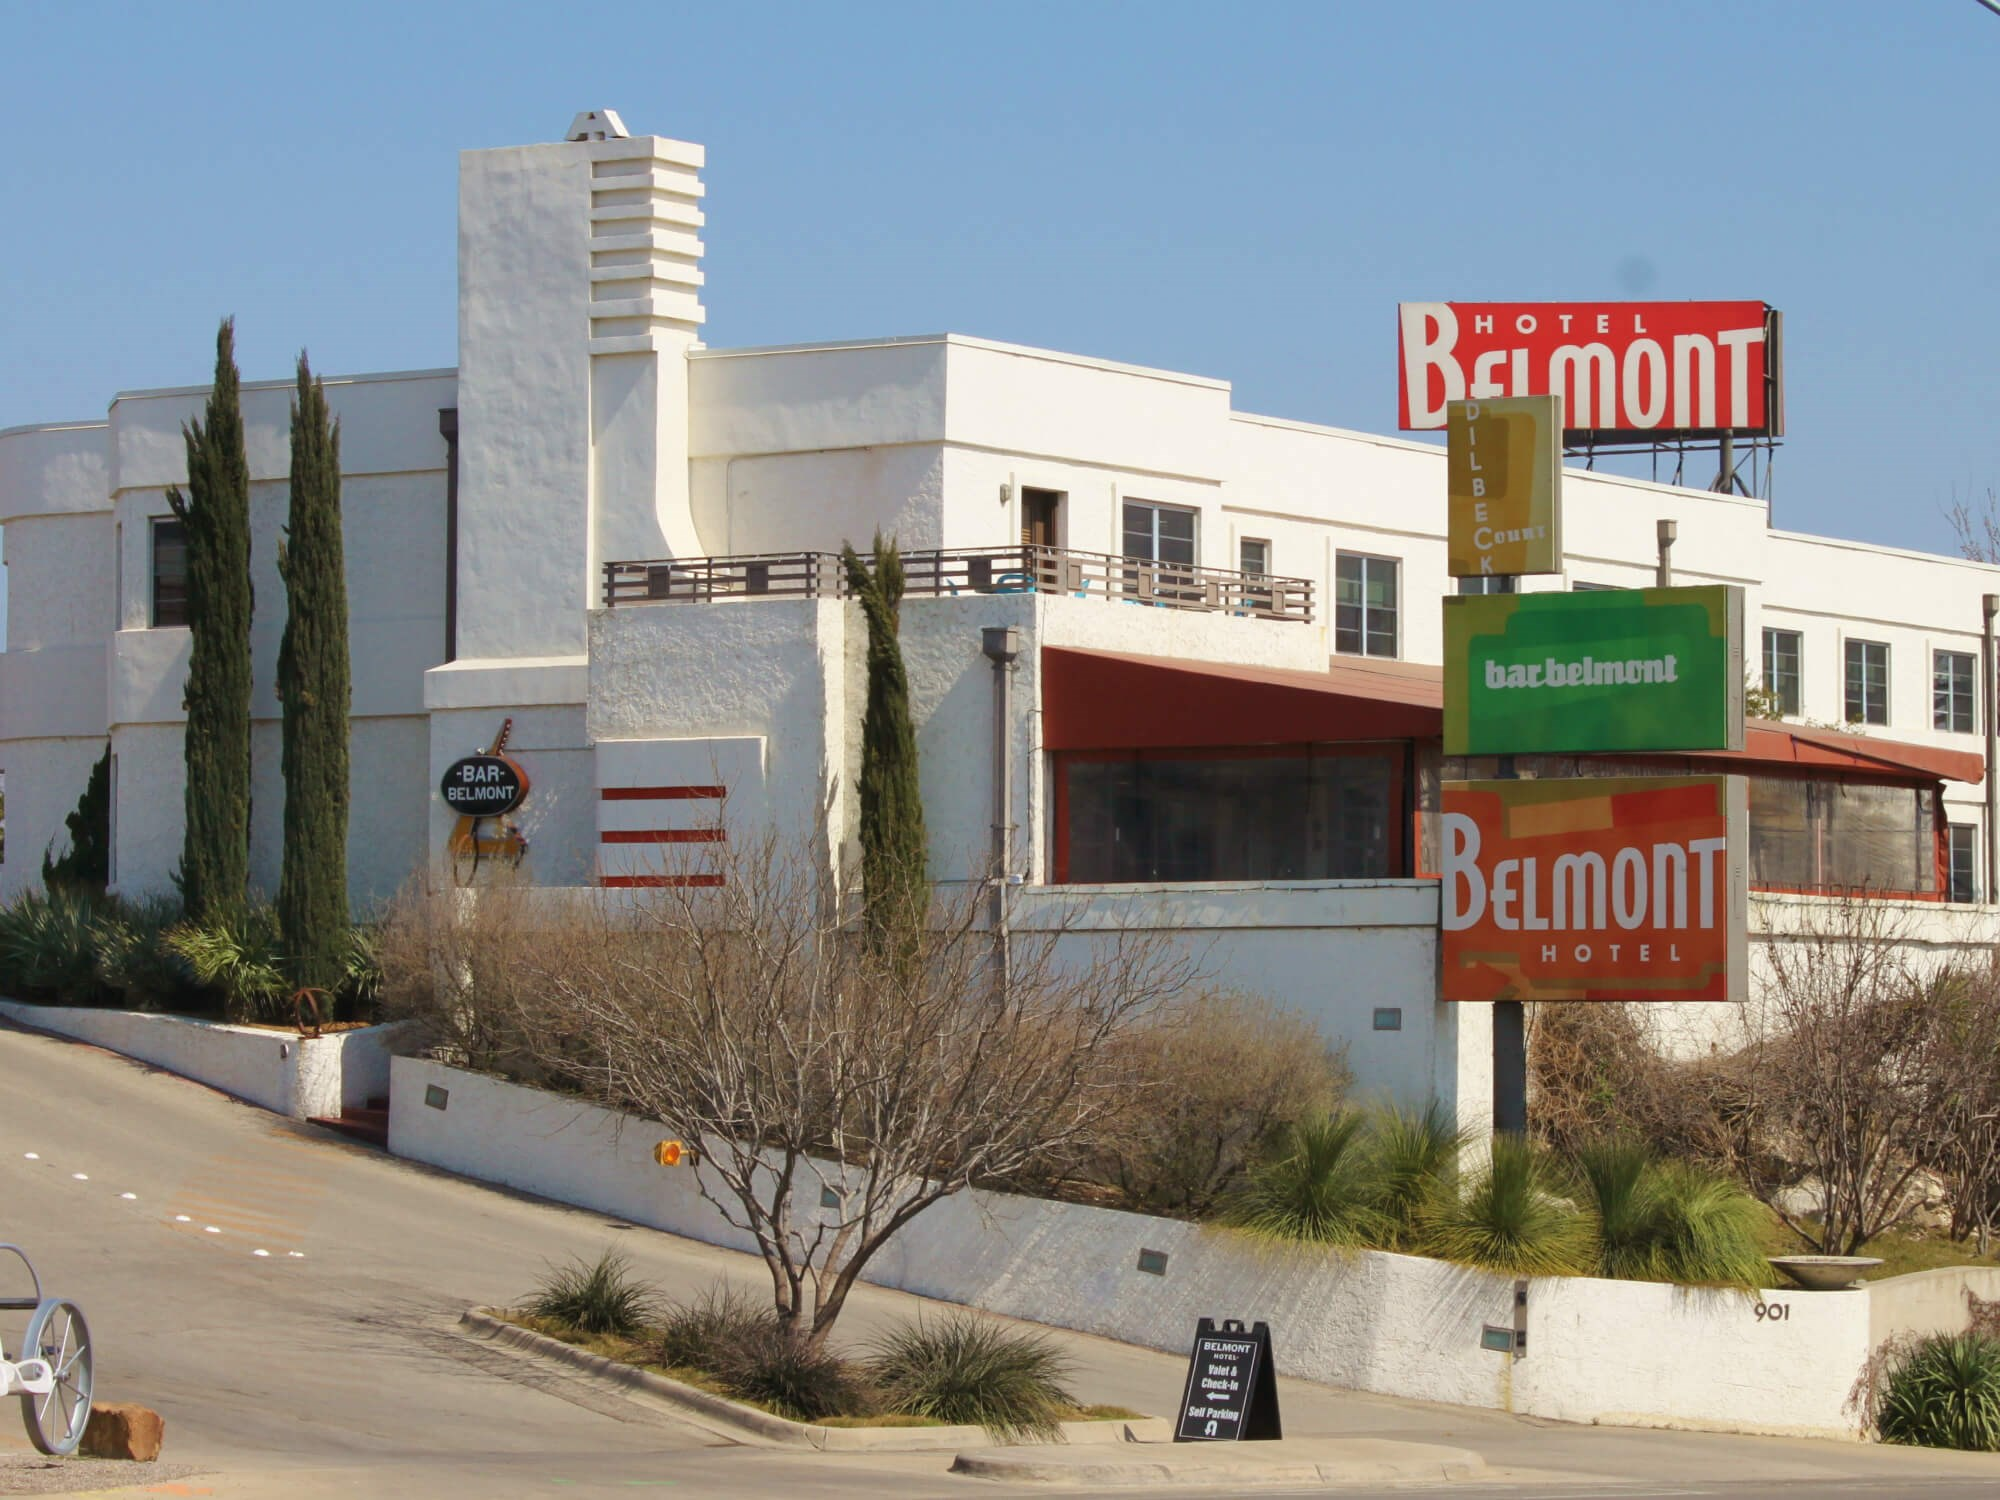 Image of Belmont Hotel Dallas